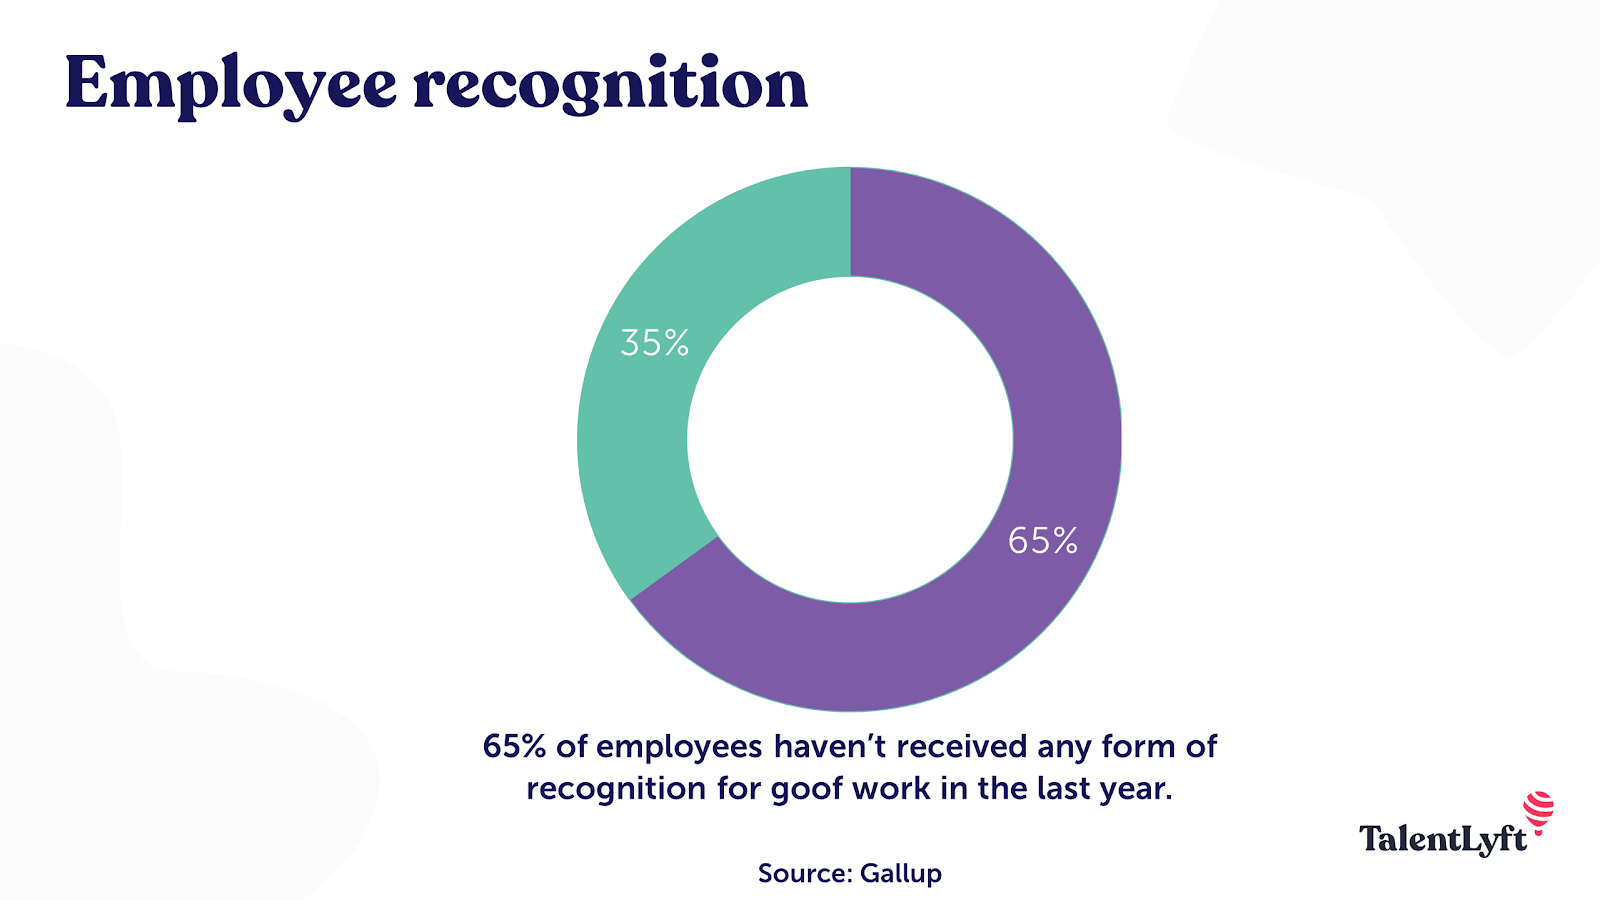 Recognize your employees - employee recognition stats